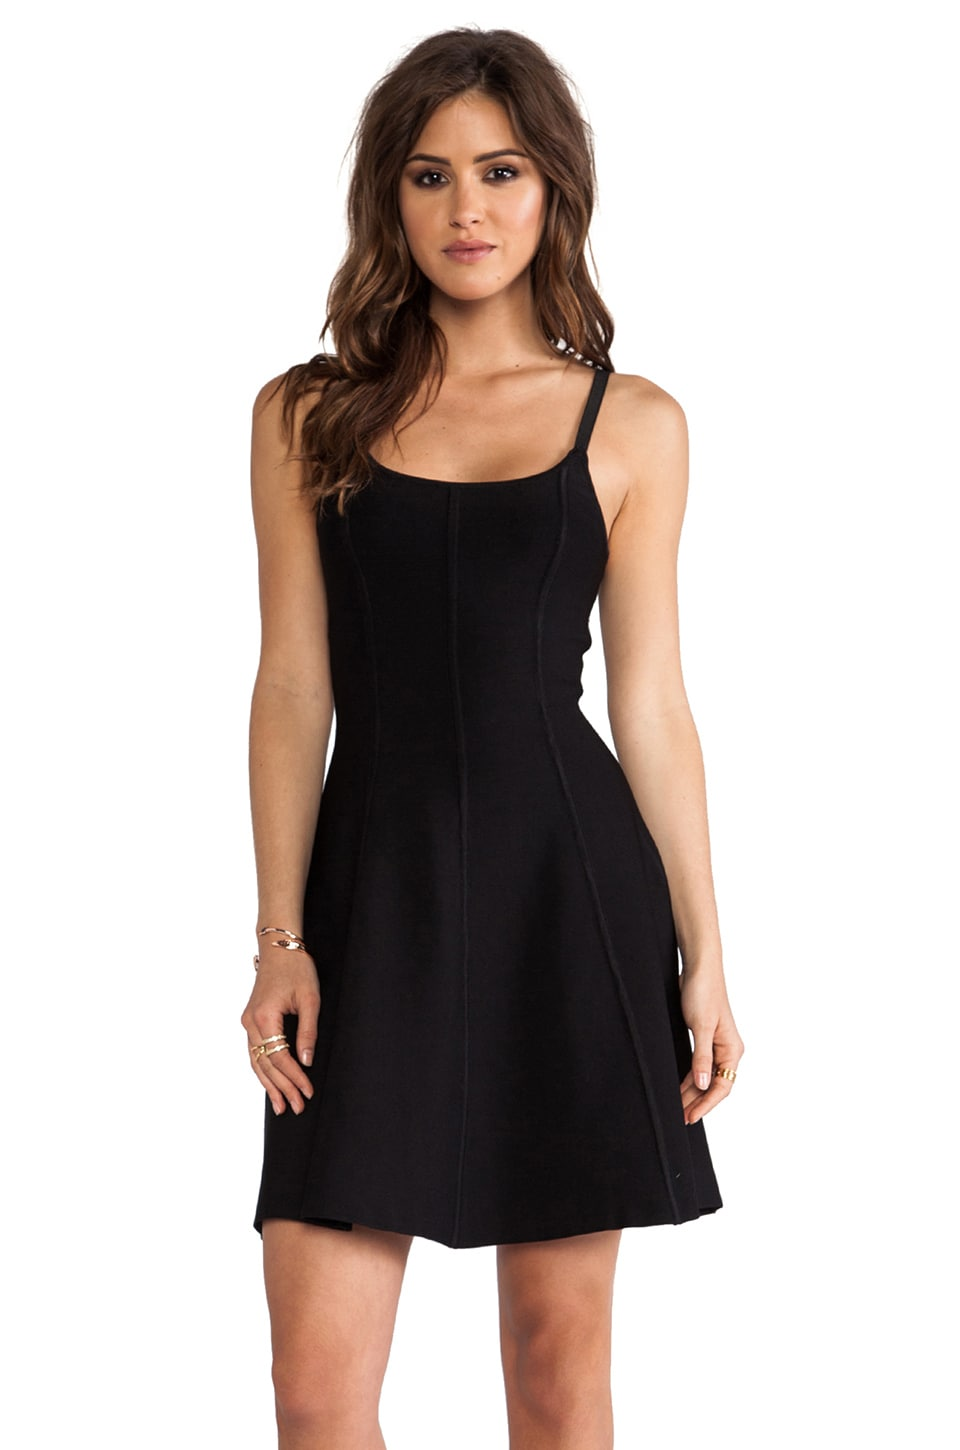 Catherine Malandrino Dariana Dress in Noir